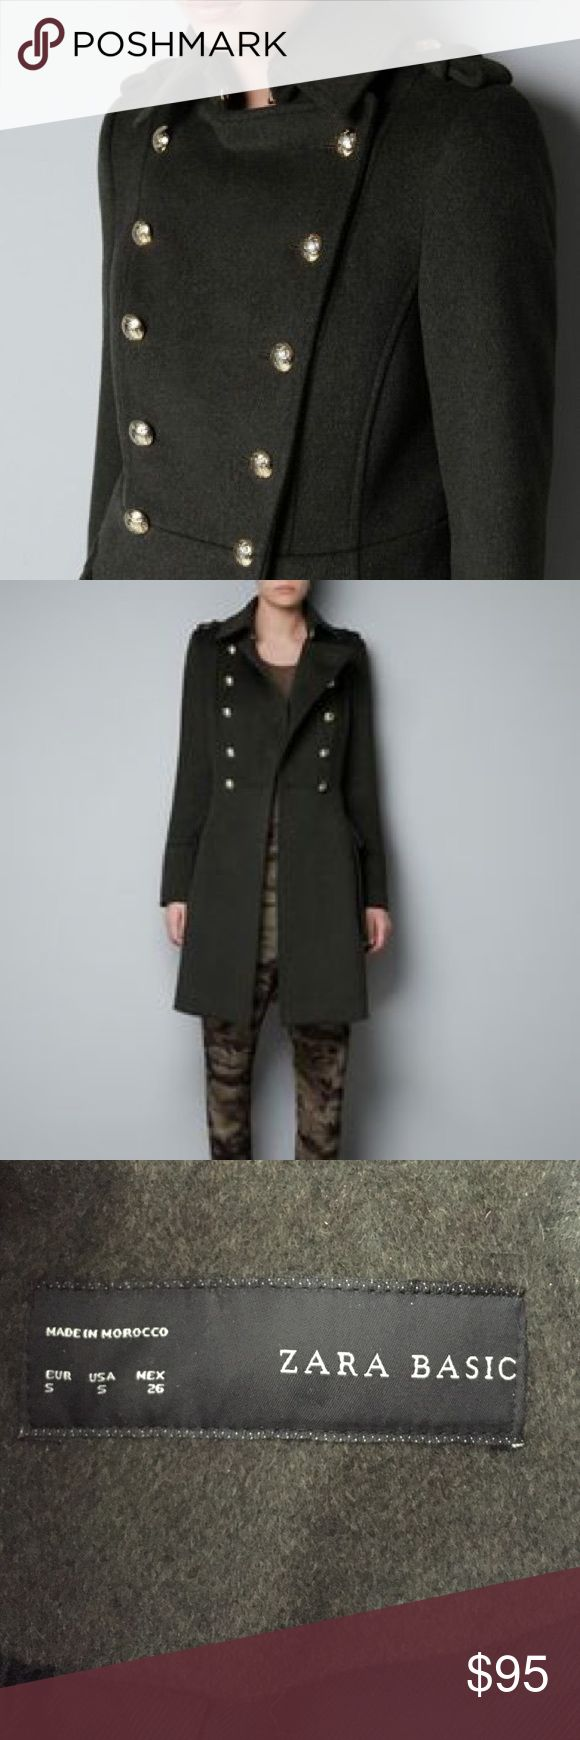 "HP Zara Wool Blend Military Pea Coat Like new, gorgeous chic and classic army green military style pea coat with gold buttons.  Length is 36"".  50% wool.  Features detail on shoulders, large side pockets and buttons on sleeves.  In excellent condition. Zara Jackets & Coats Pea Coats"